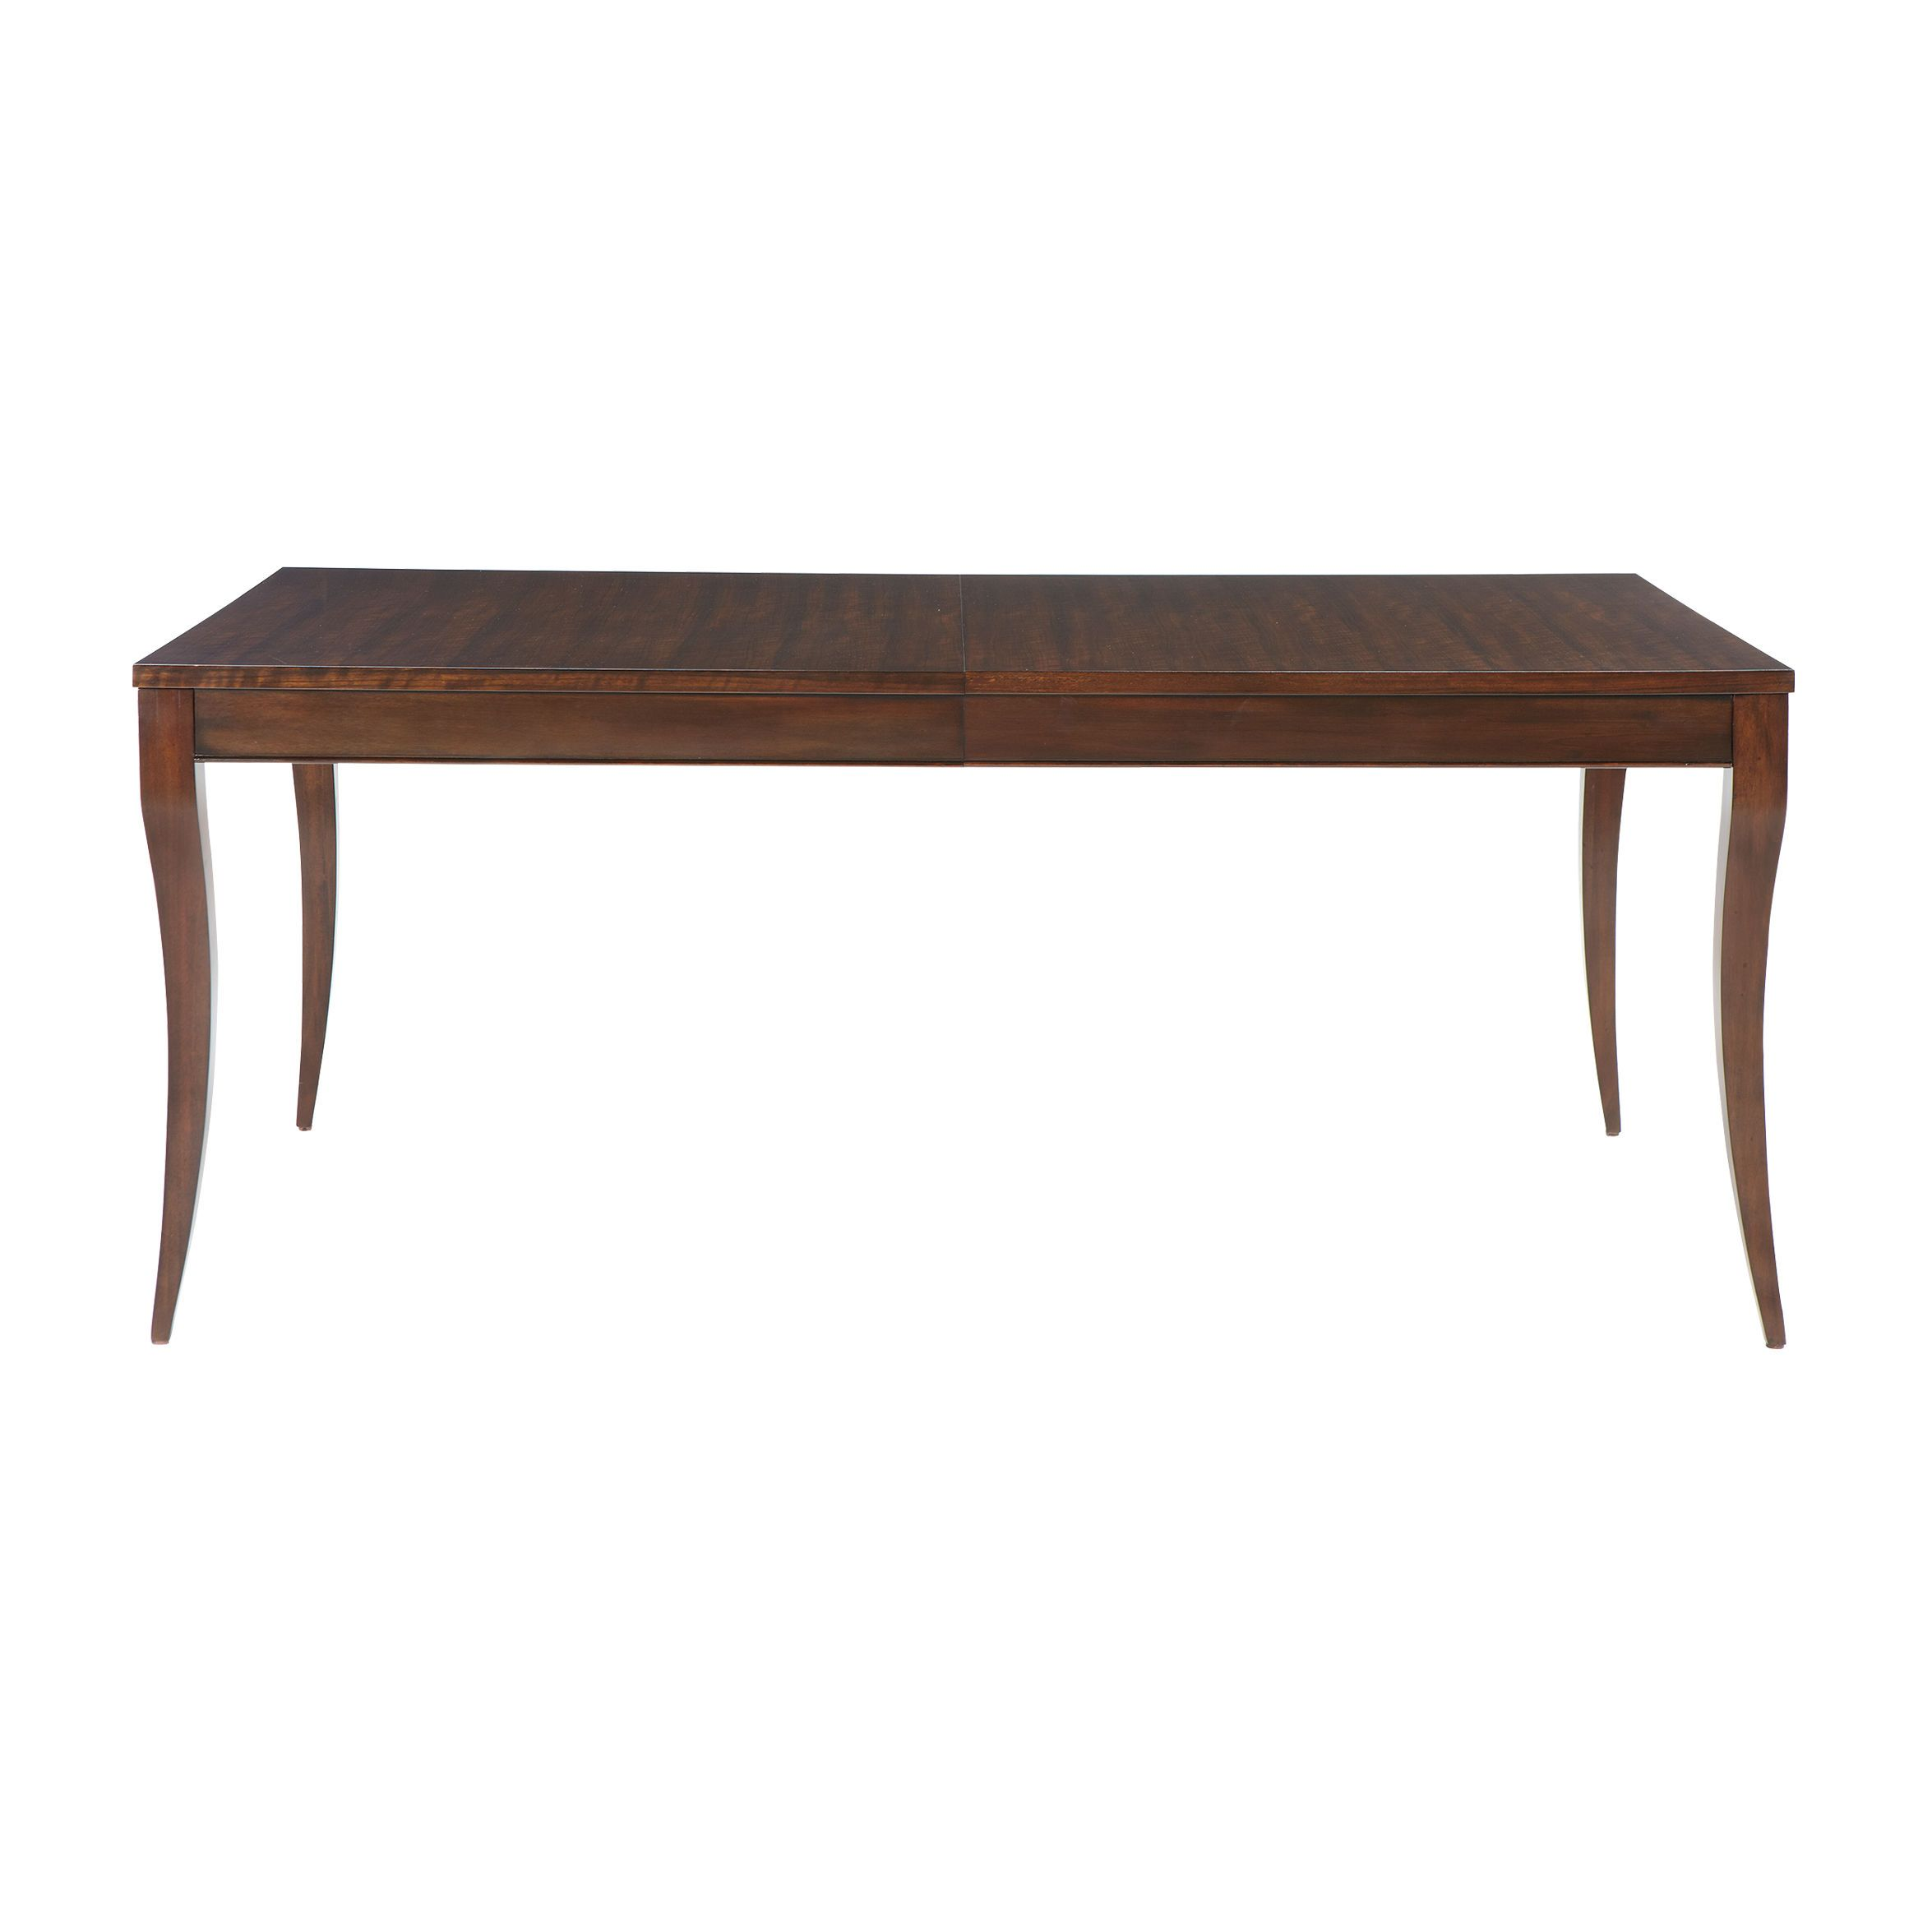 ethan allen dining tables. Barrymore Dining Table - Ethan Allen US Tables